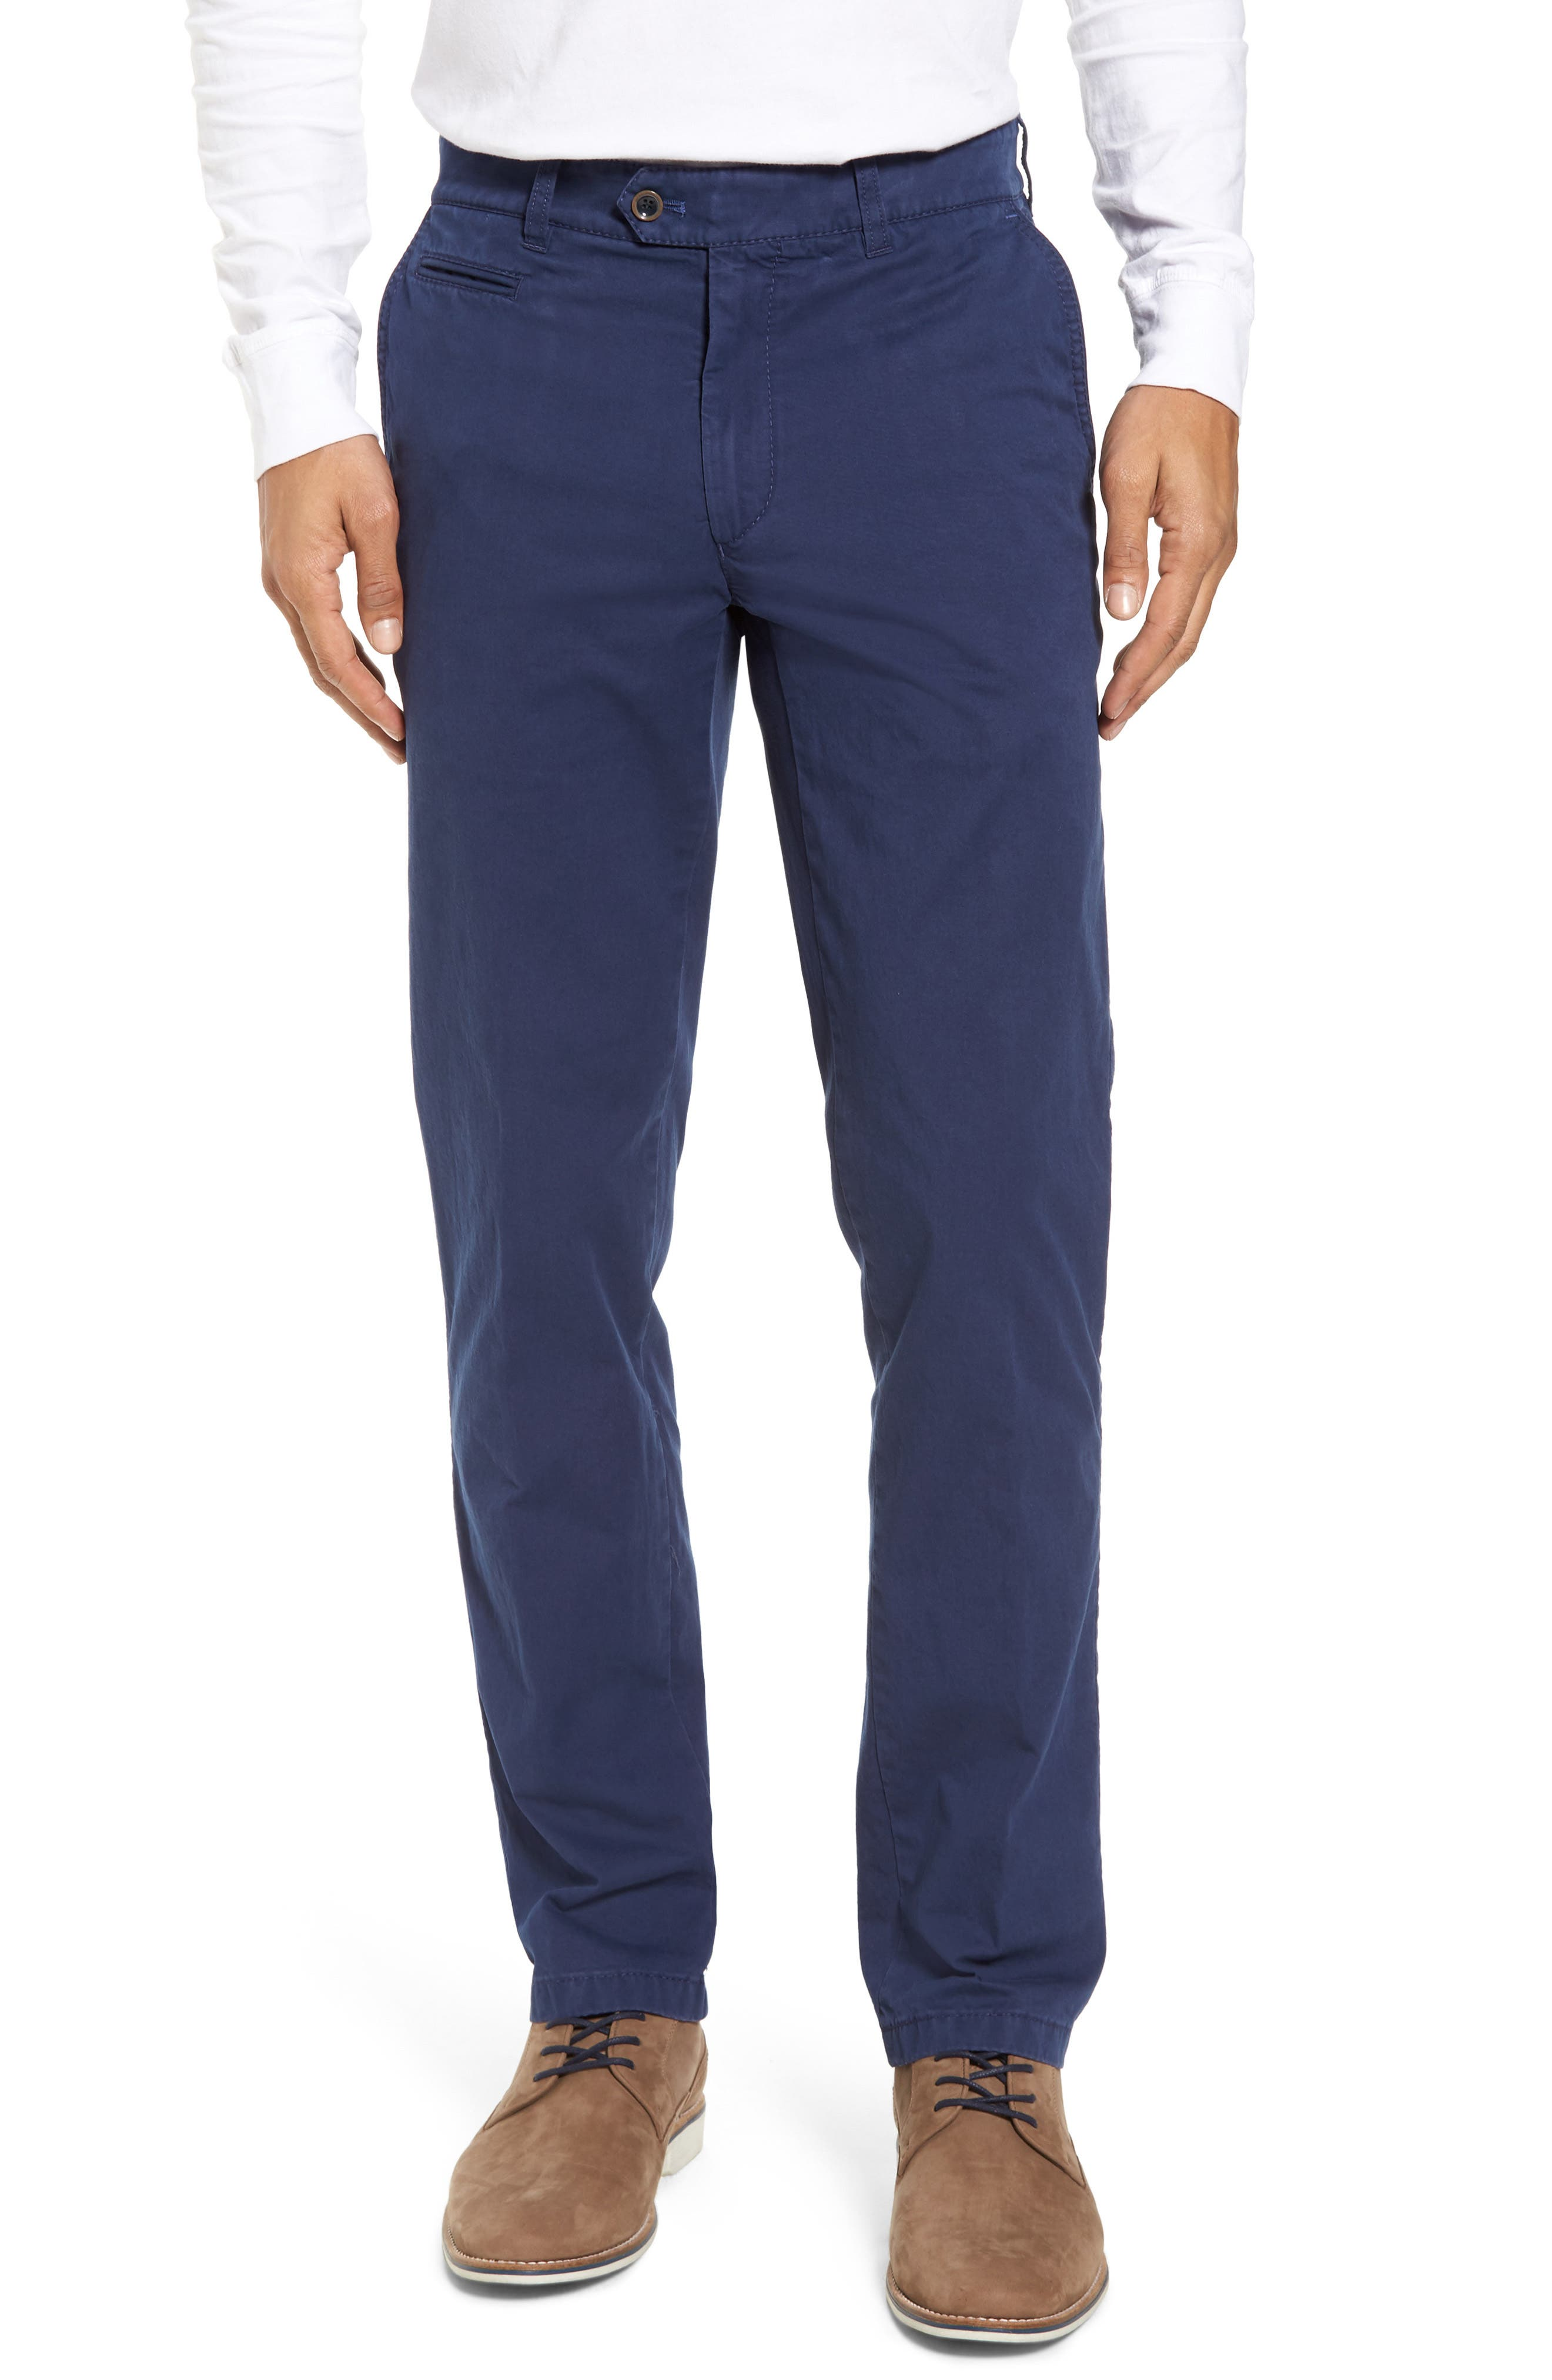 Everest Flat Front Chinos,                         Main,                         color, Pacific